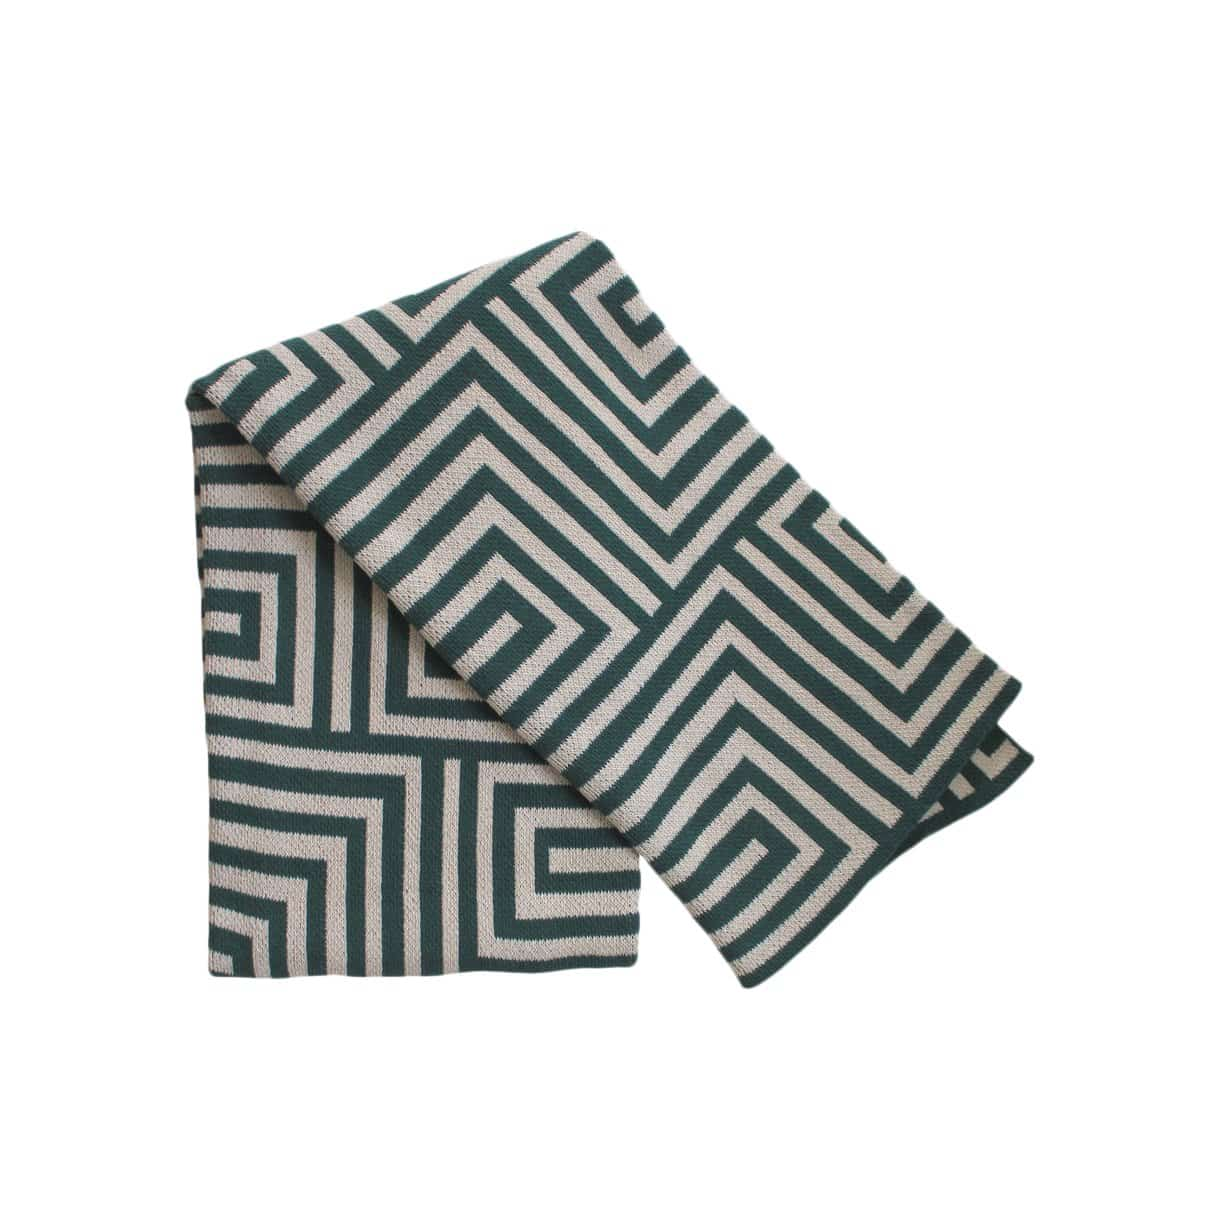 Happy Habitat Cushions + Throws Maze Jungle + Linen Throw